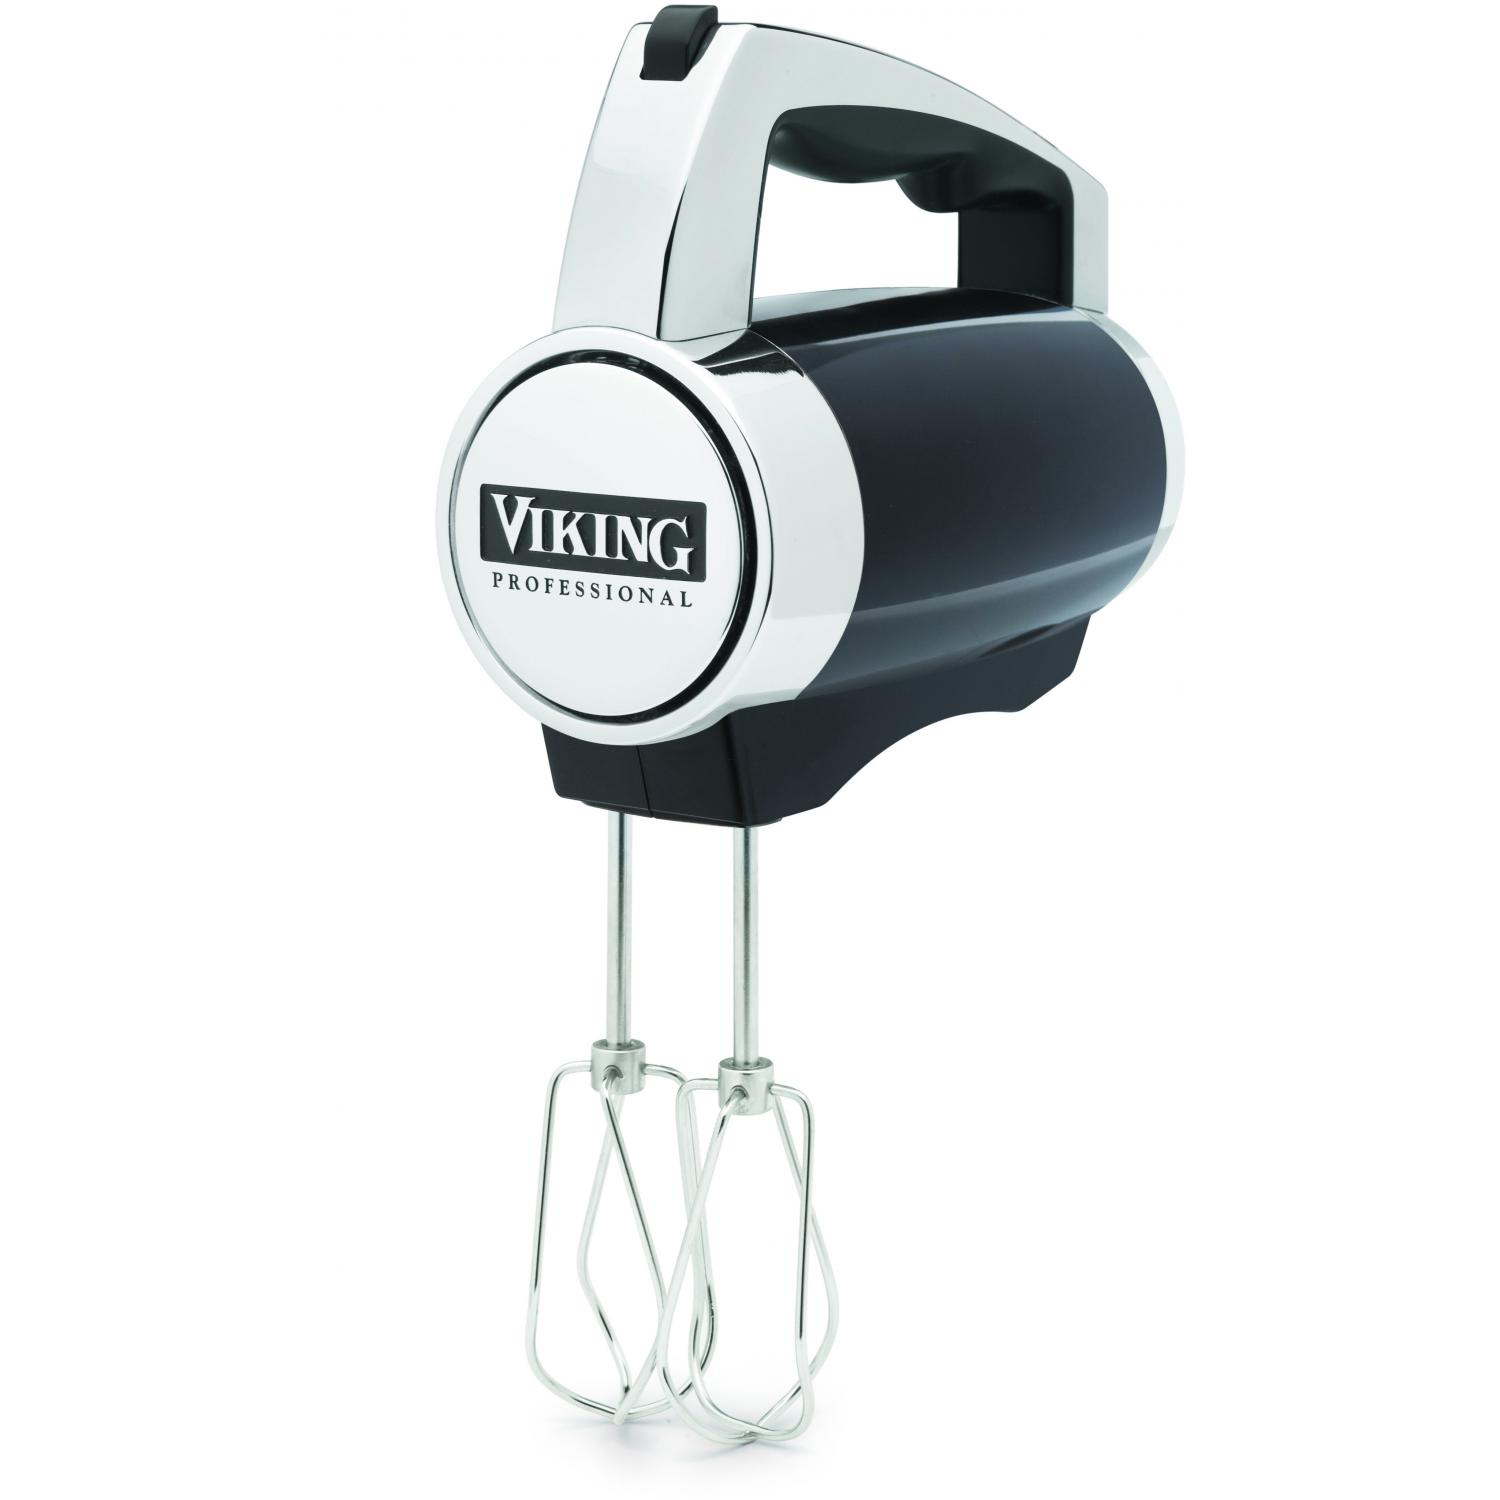 Viking VHMD9BK 9-Speed Digital Hand Mixer - Black